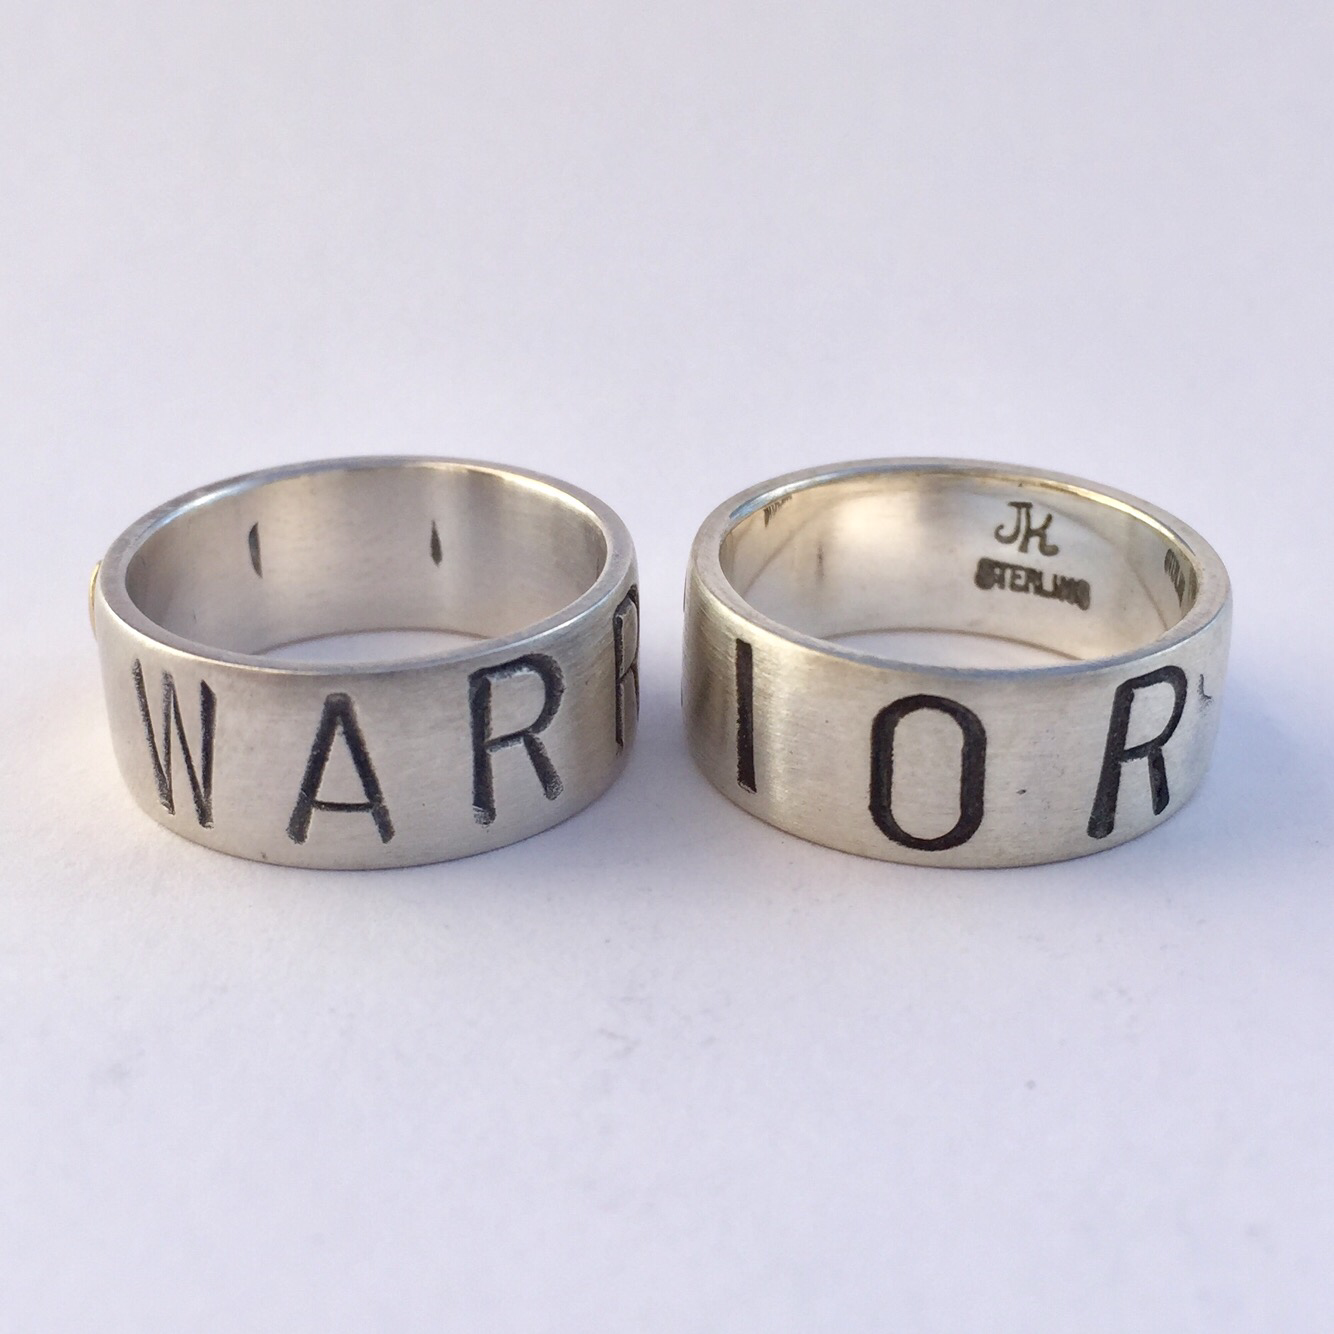 Warrior Ring Sterling Silver 8mm (wide) band with silver heart